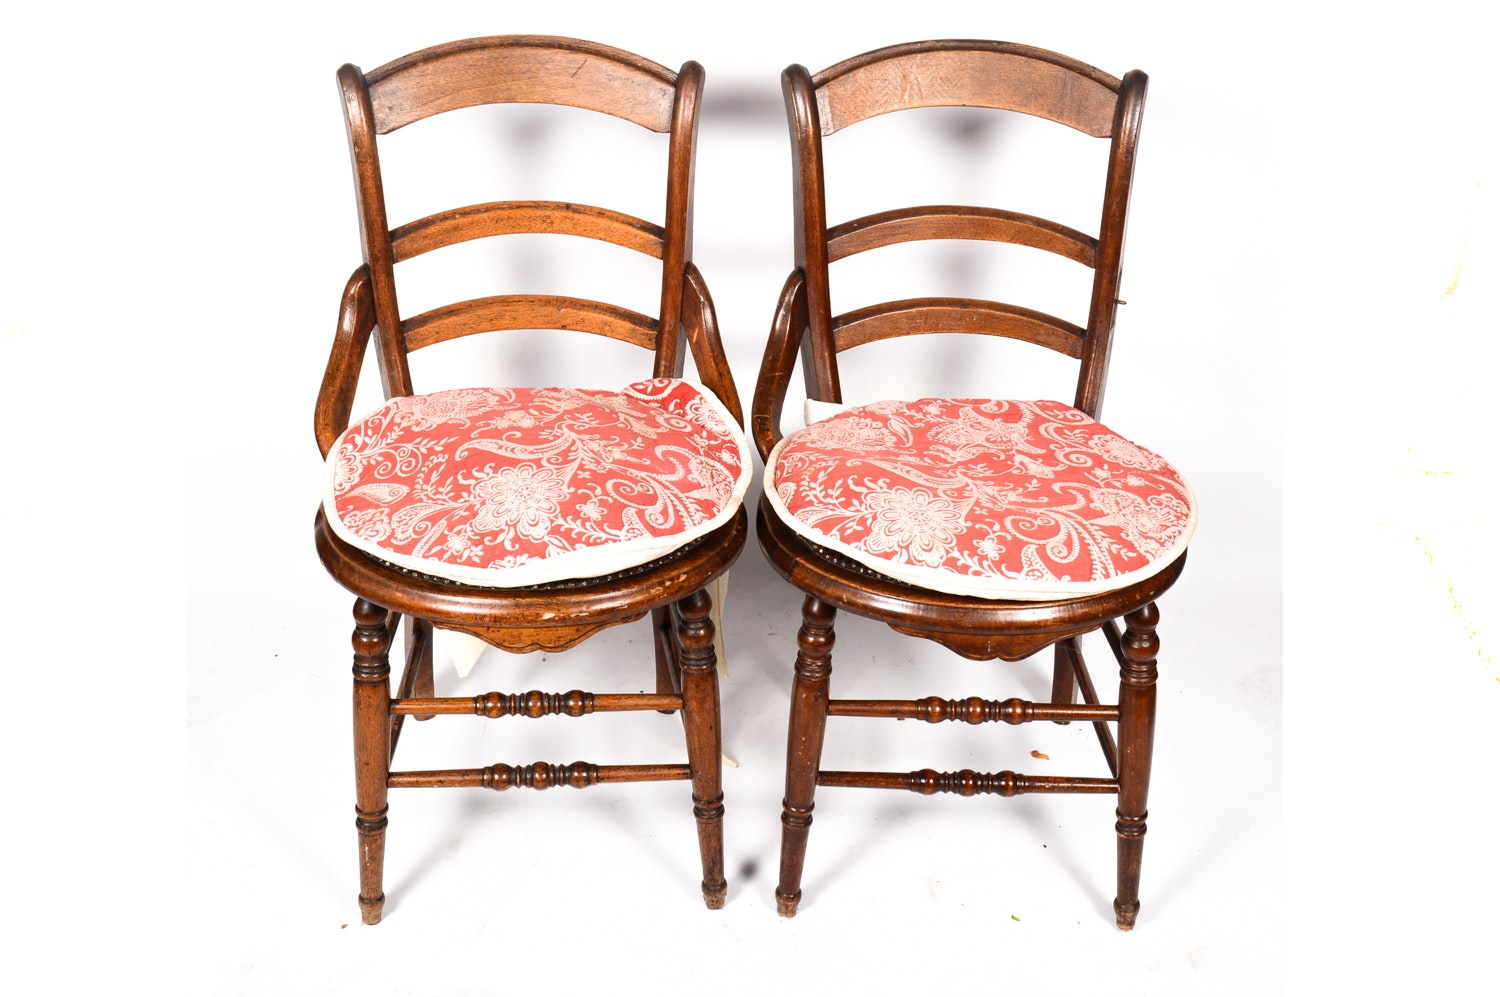 Antique Late Victorian Side Chairs with Needlepoint Upholstery